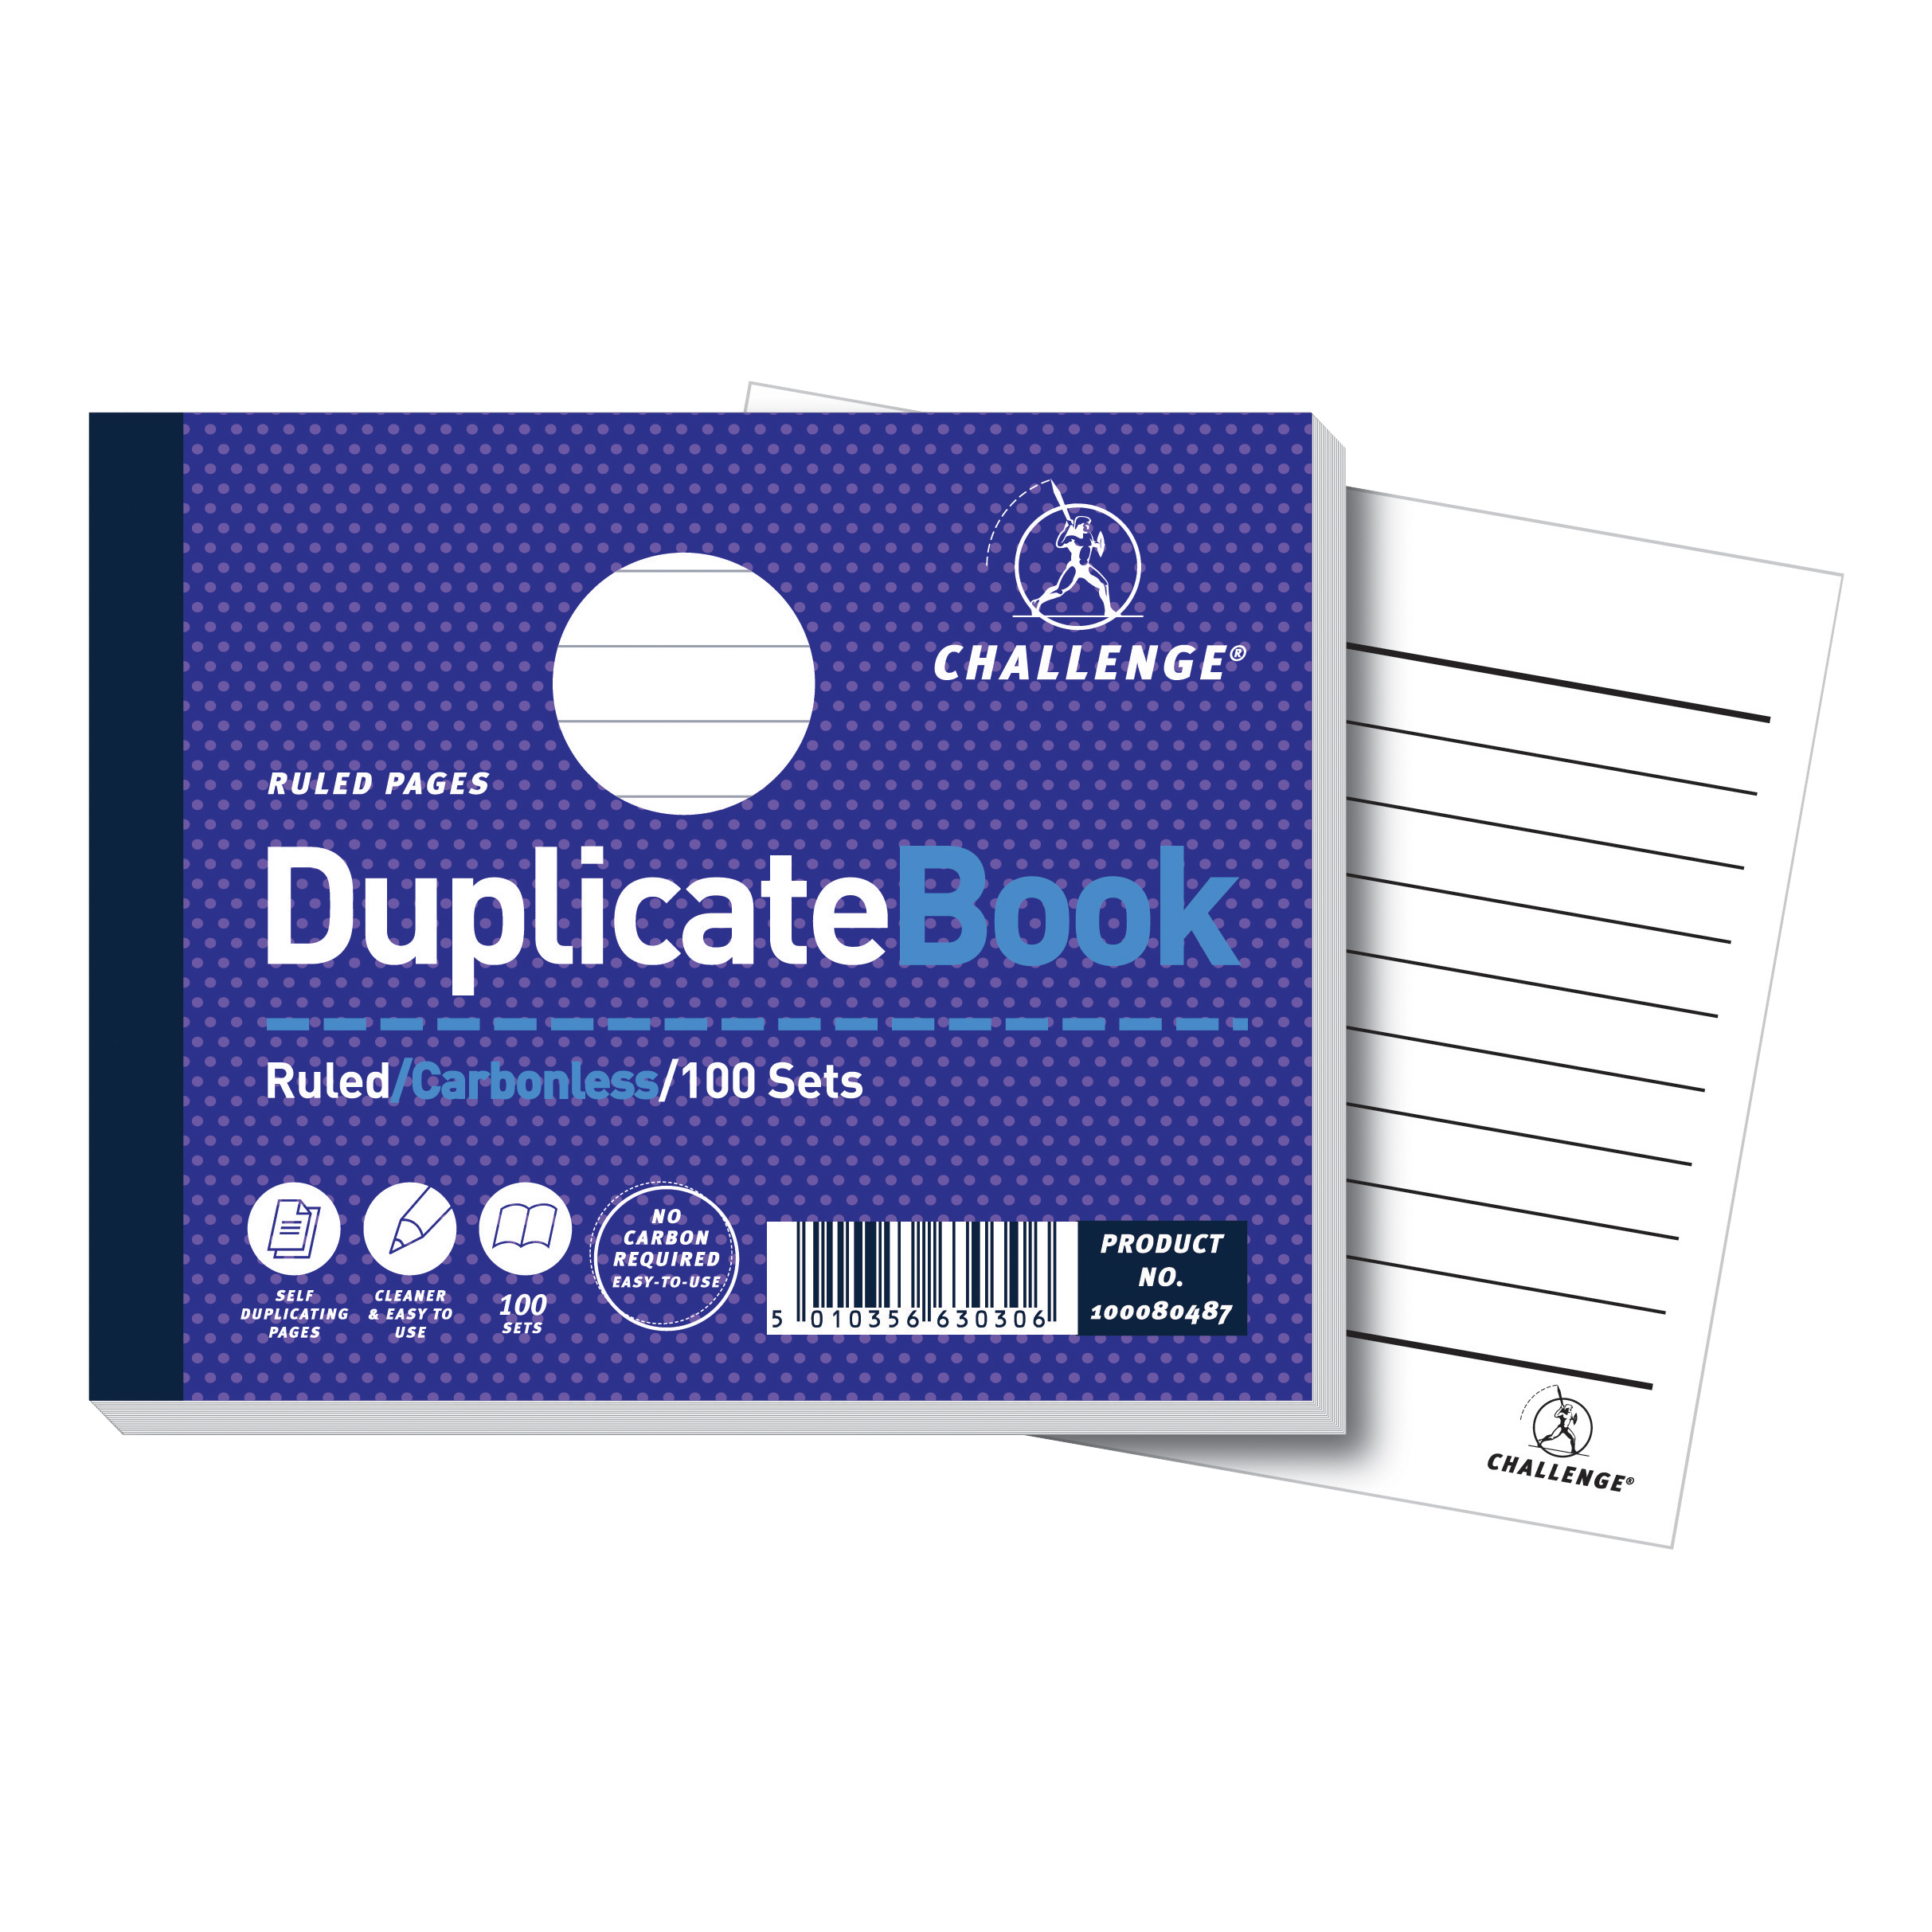 Duplicate Challenge Duplicate Book Carbonless Ruled 100 Sets 105x130mm Ref 100080487 Pack 5